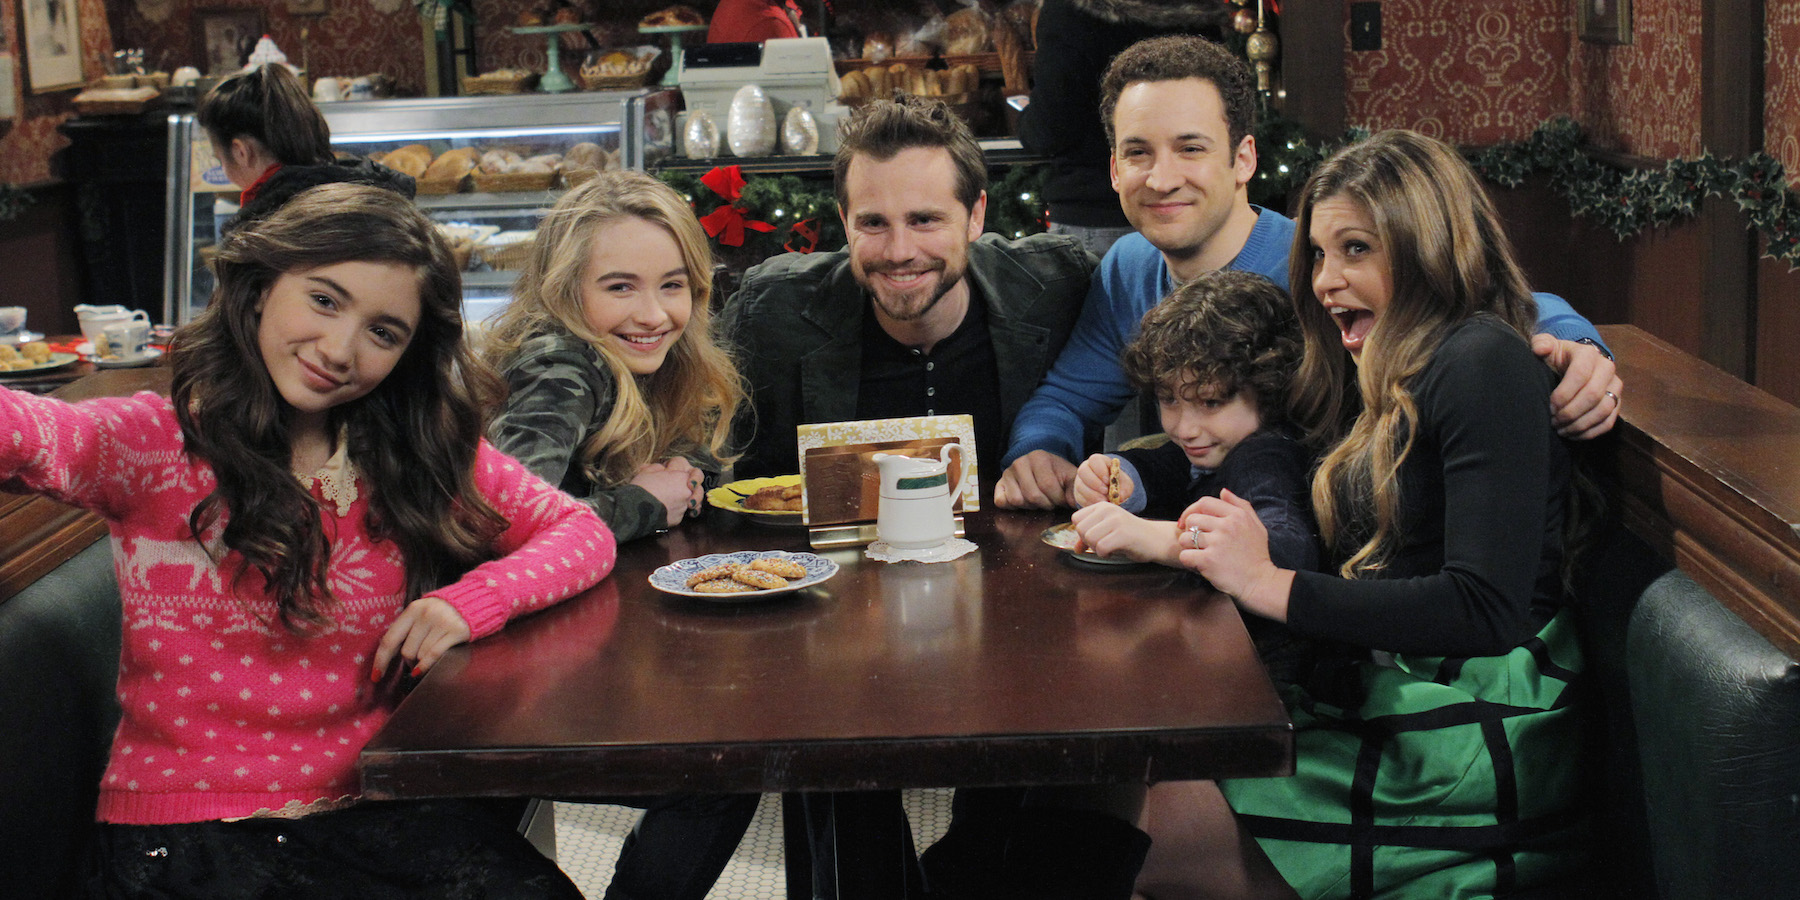 new girl meets world 2016 'girl meets world ' finale: it's time girl riley meets boy—and cory fans can tune in for four days of fun from march 26 to 29 with eight new episodes of hit.